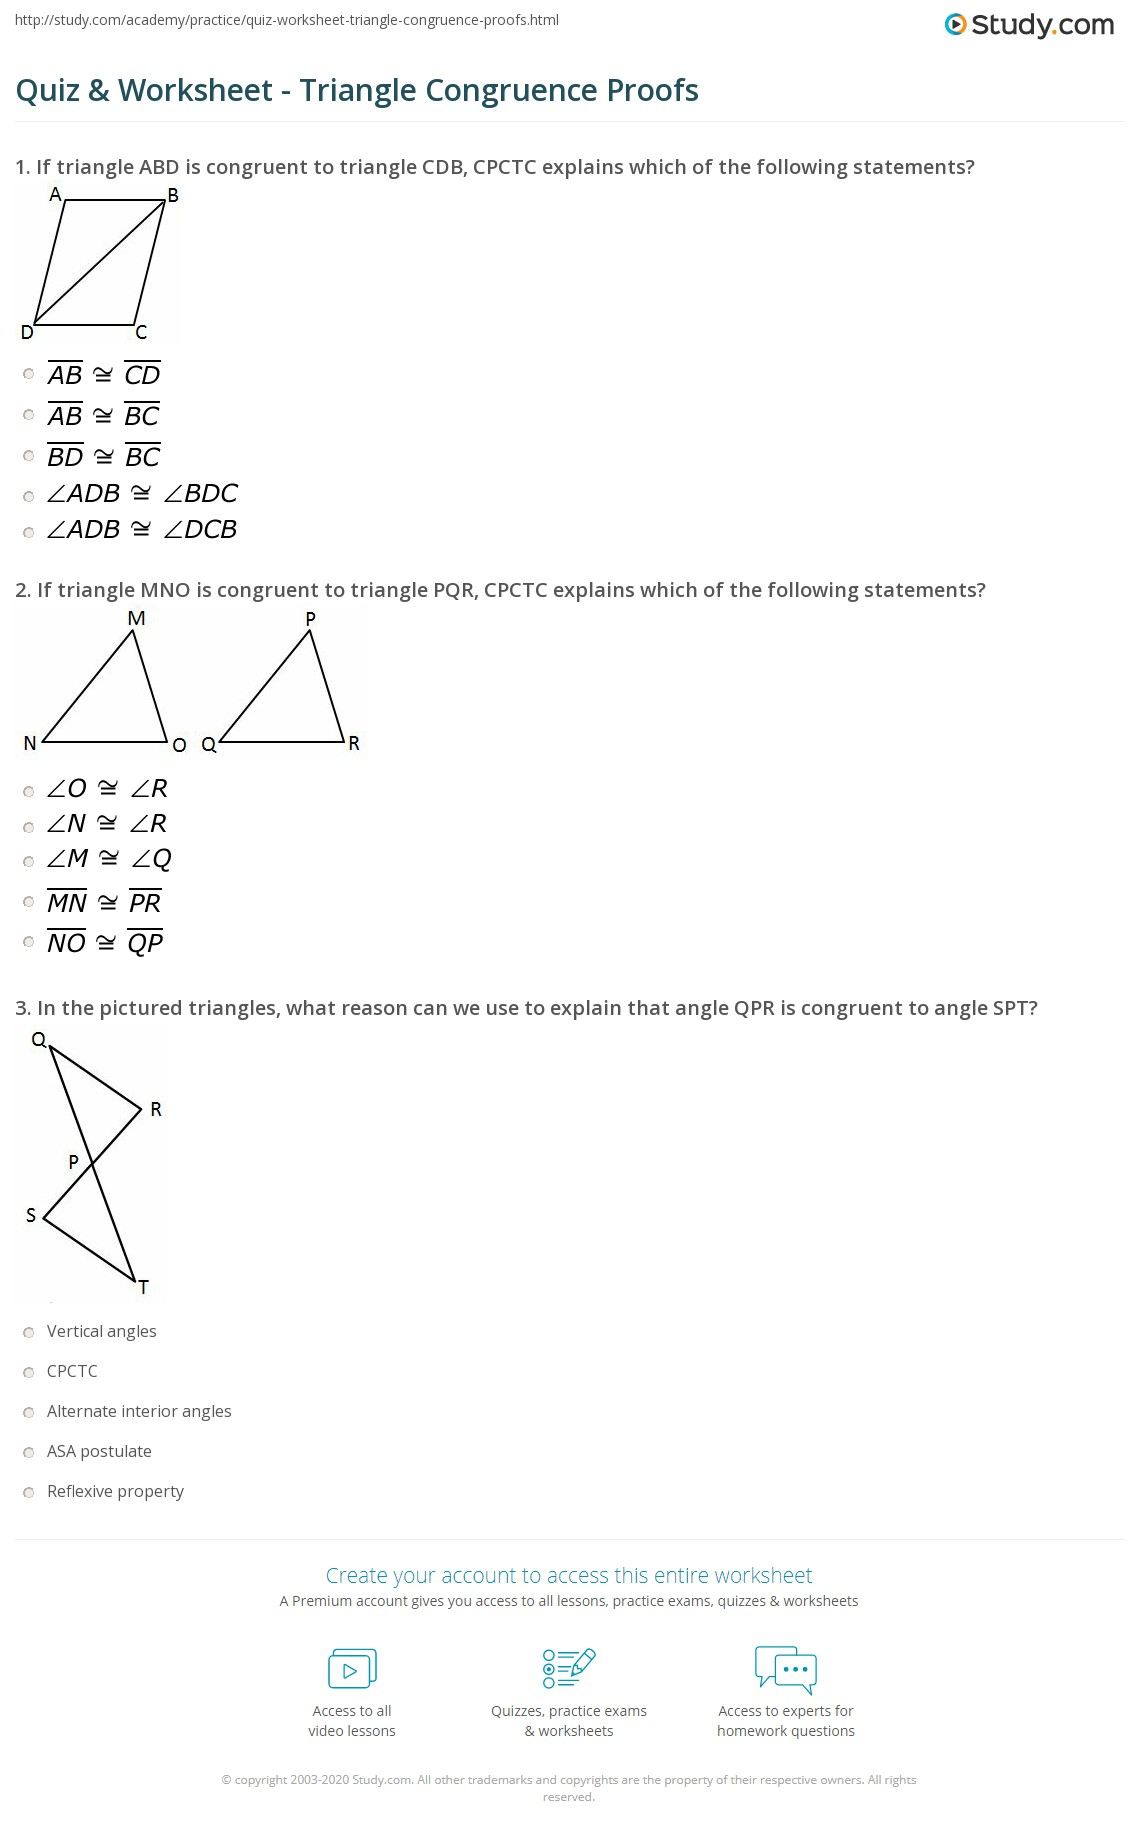 quiz worksheet triangle congruence proofs. Black Bedroom Furniture Sets. Home Design Ideas